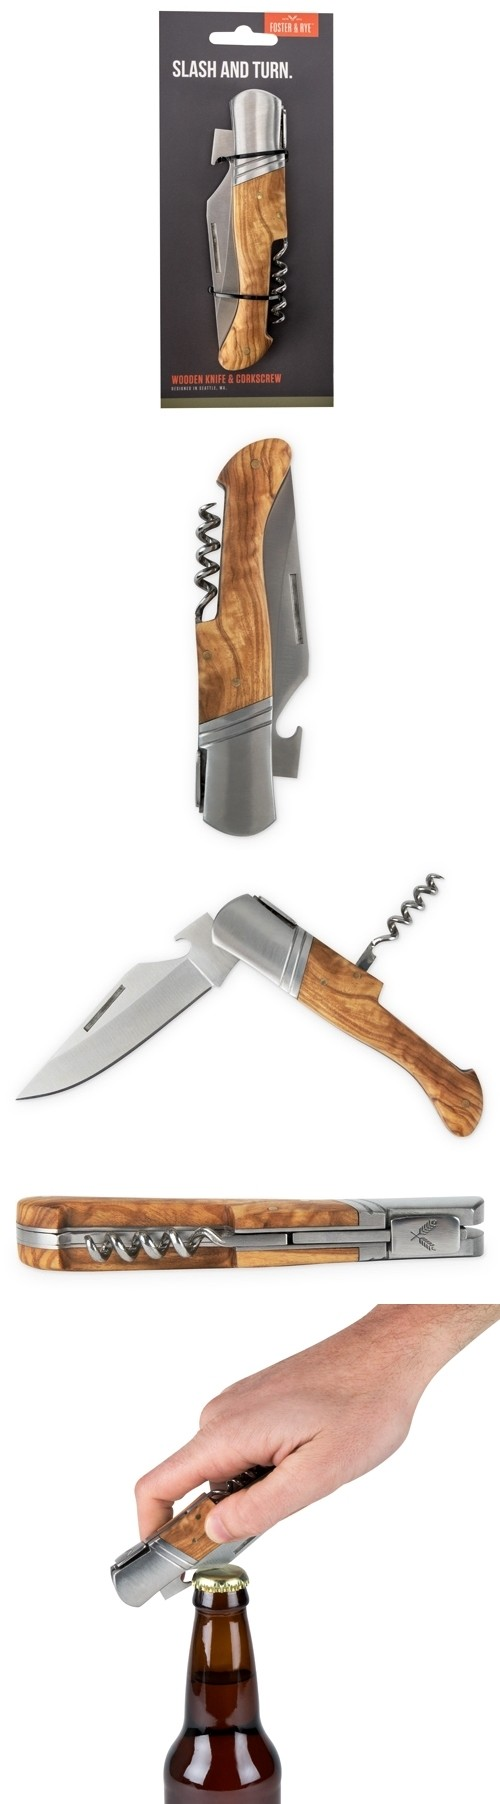 Olive Wood & Stainless Steel Corkscrew+Knife Combo by Foster & Rye